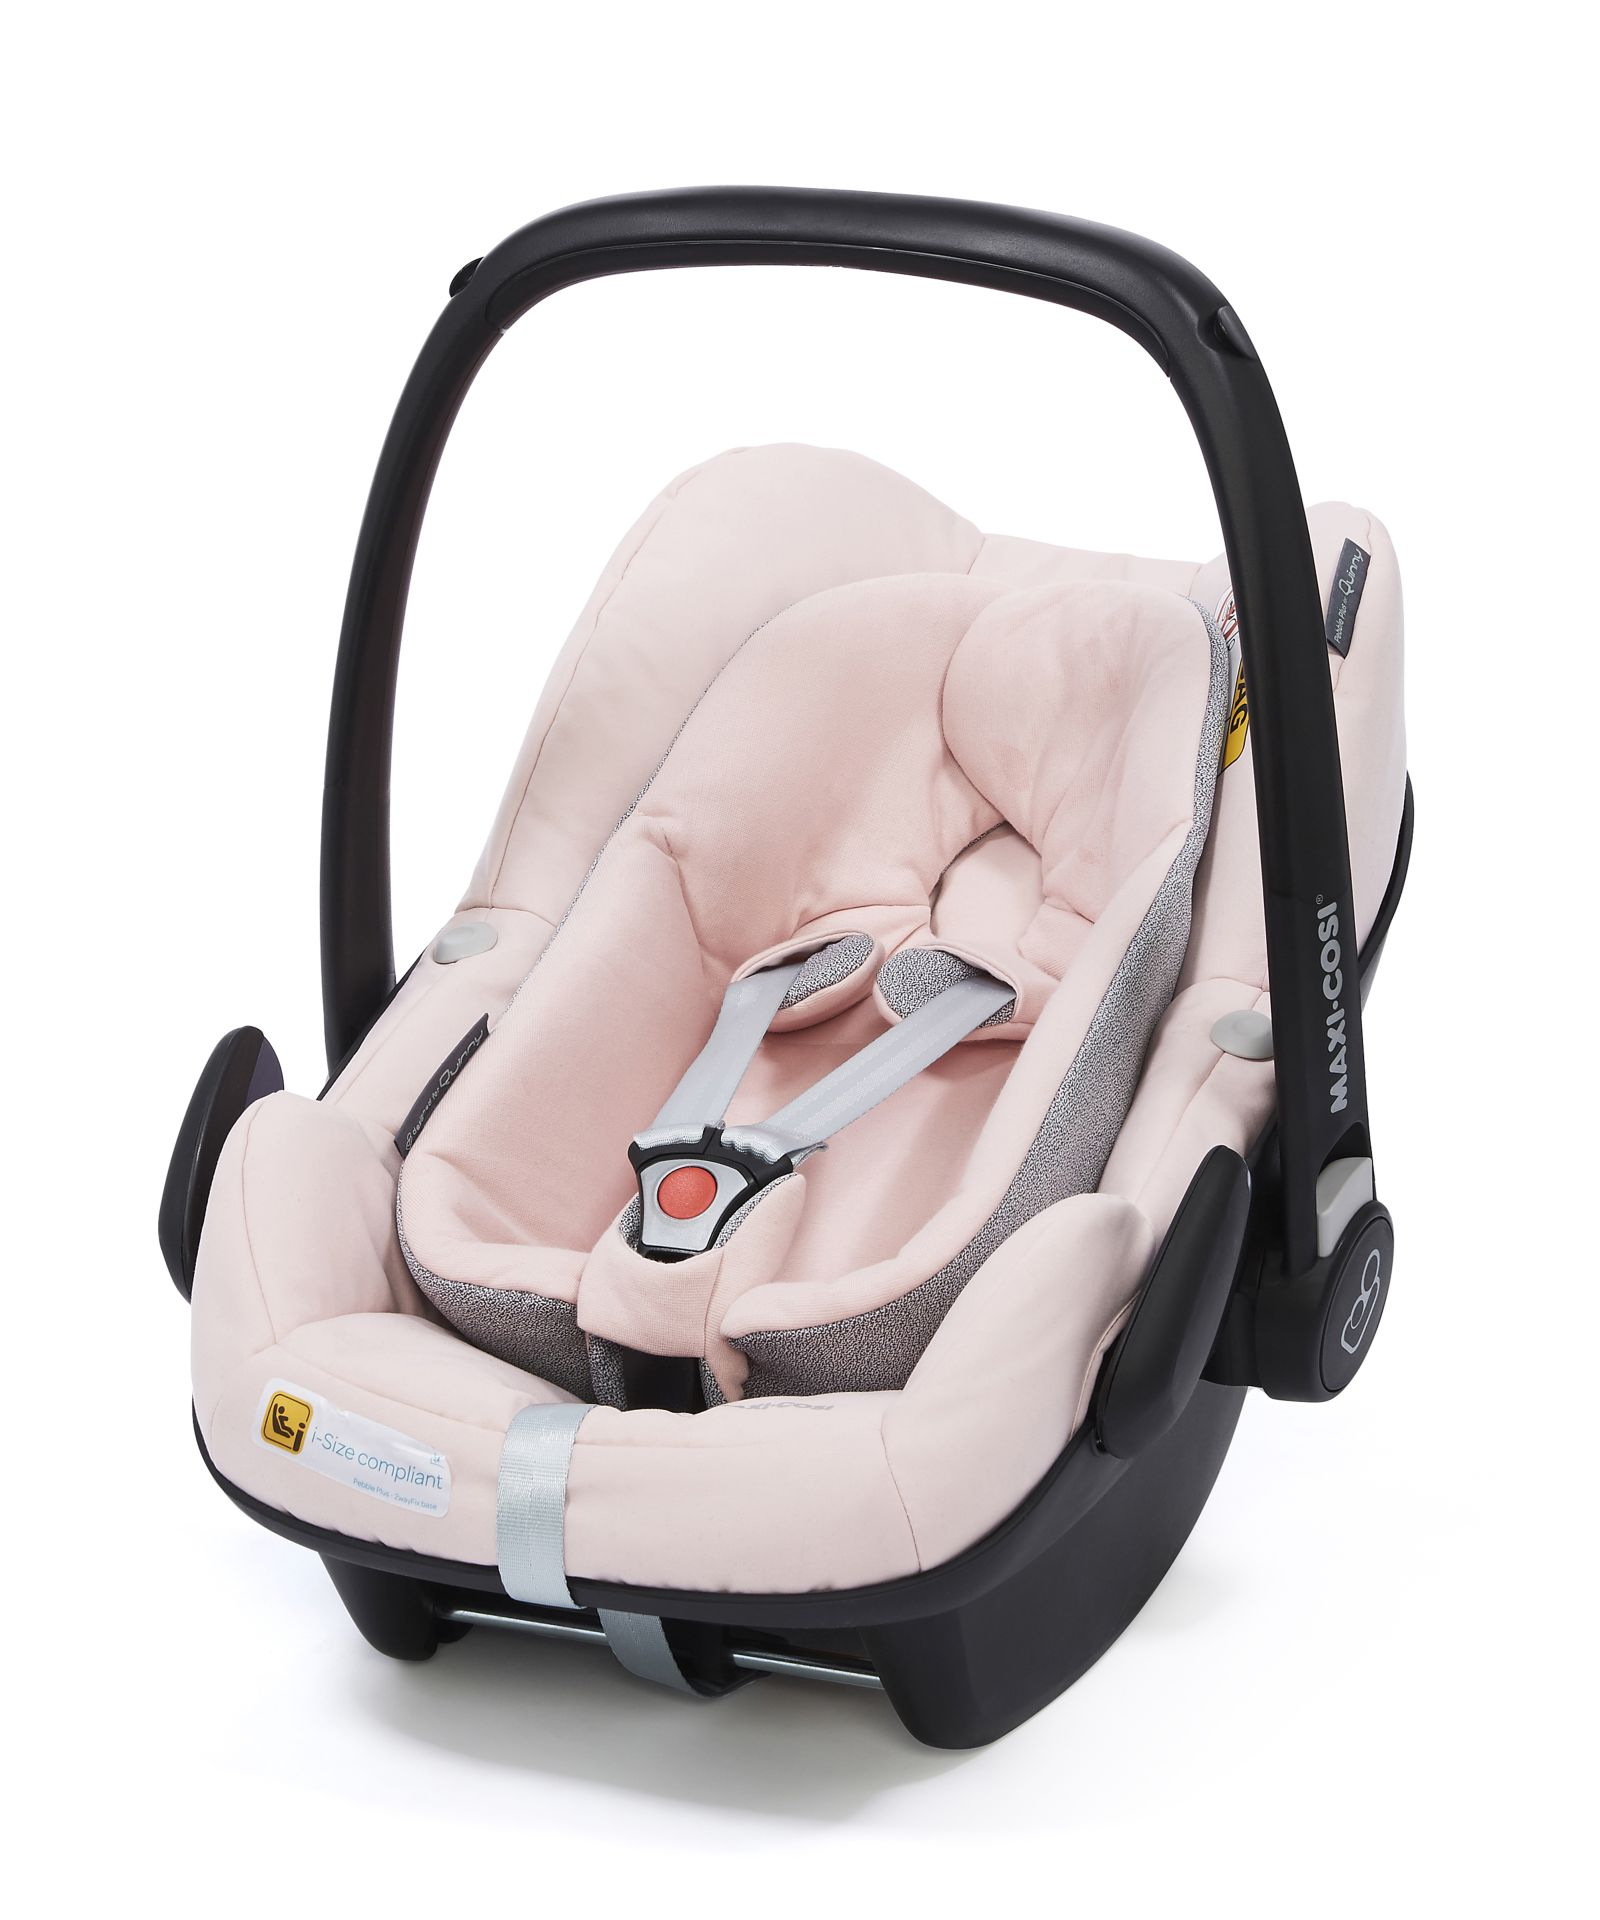 Maxi Cosi Infant Car Seat Pebble Plus Blush Q Design 2019